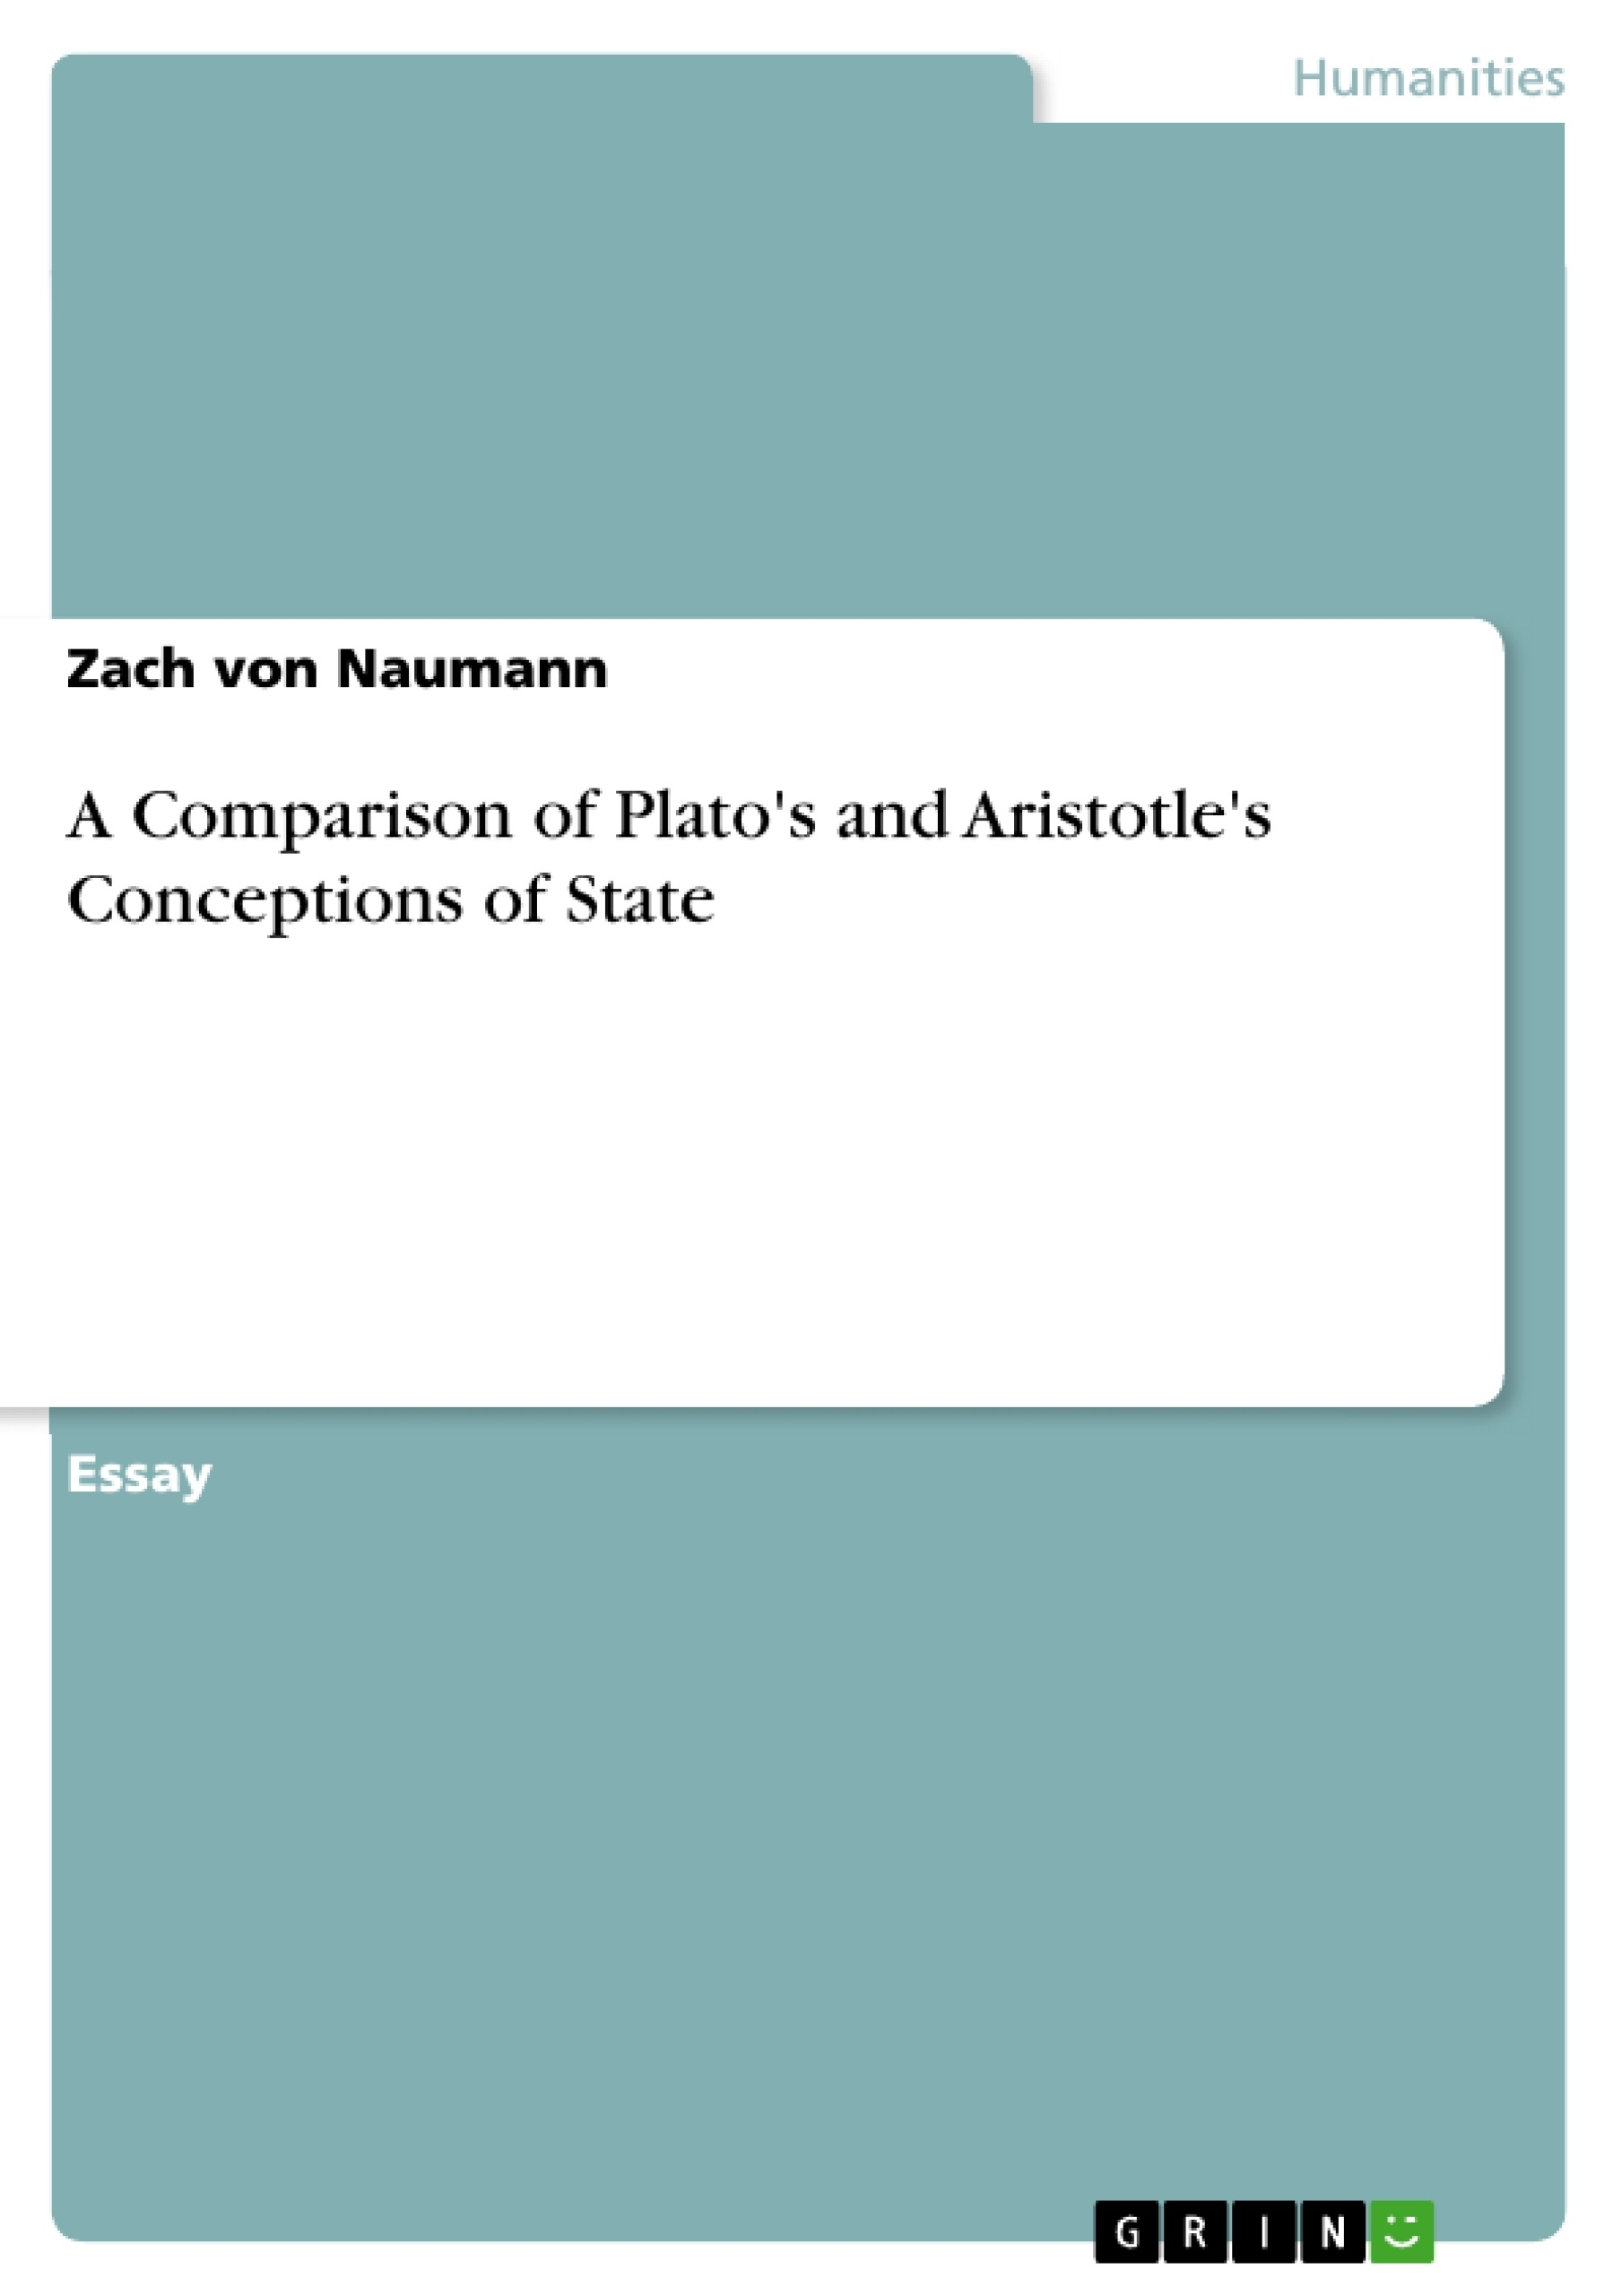 a comparison of plato s and aristotle s conceptions of state  upload your own papers earn money and win an iphone x